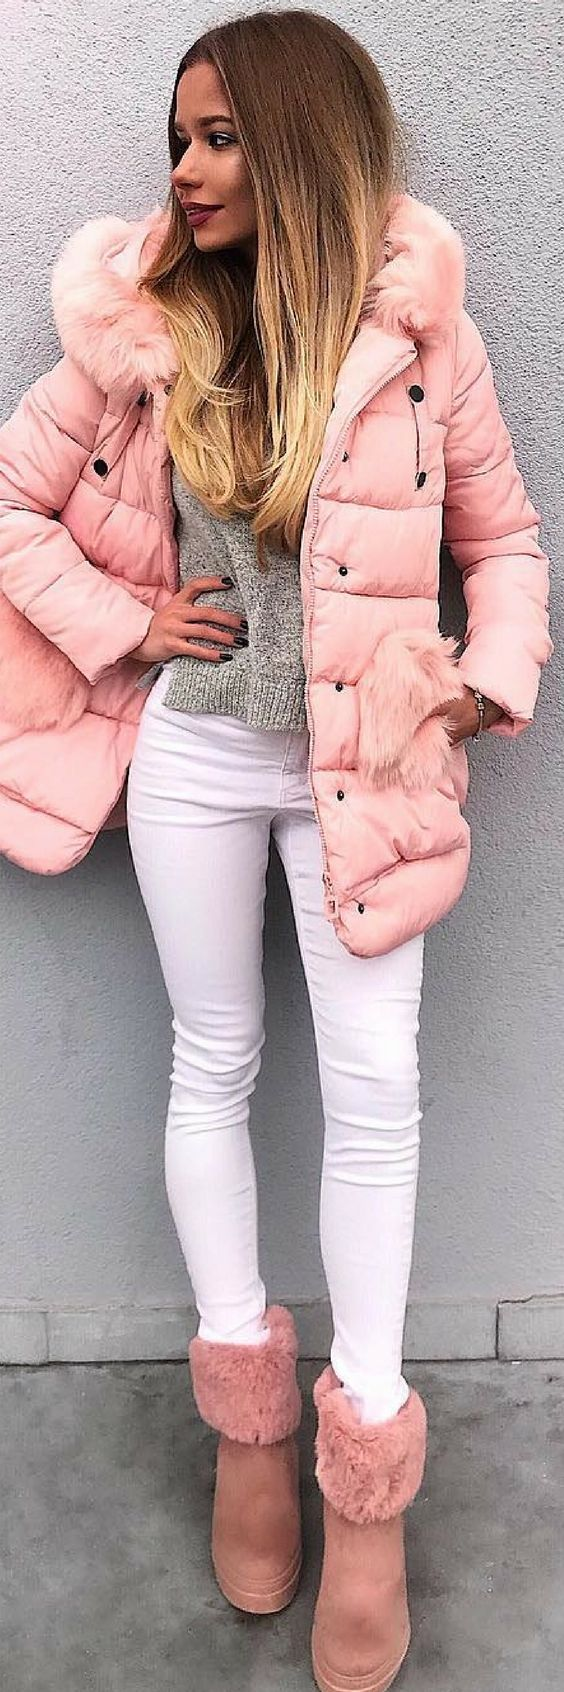 How To Style 25 Of The Most Fabulous Weekend Winter Looks https://ecstasymodels.blog/2018/01/08/style-25-fabulous-weekend-winter-looks/?utm_campaign=coschedule&utm_source=pinterest&utm_medium=Ecstasy%20Models%20-%20Womens%20Fashion%20and%20Streetstyle&utm_content=How%20To%20Style%2025%20Of%20The%20Most%20Fabulous%20Weekend%20Winter%20Looks